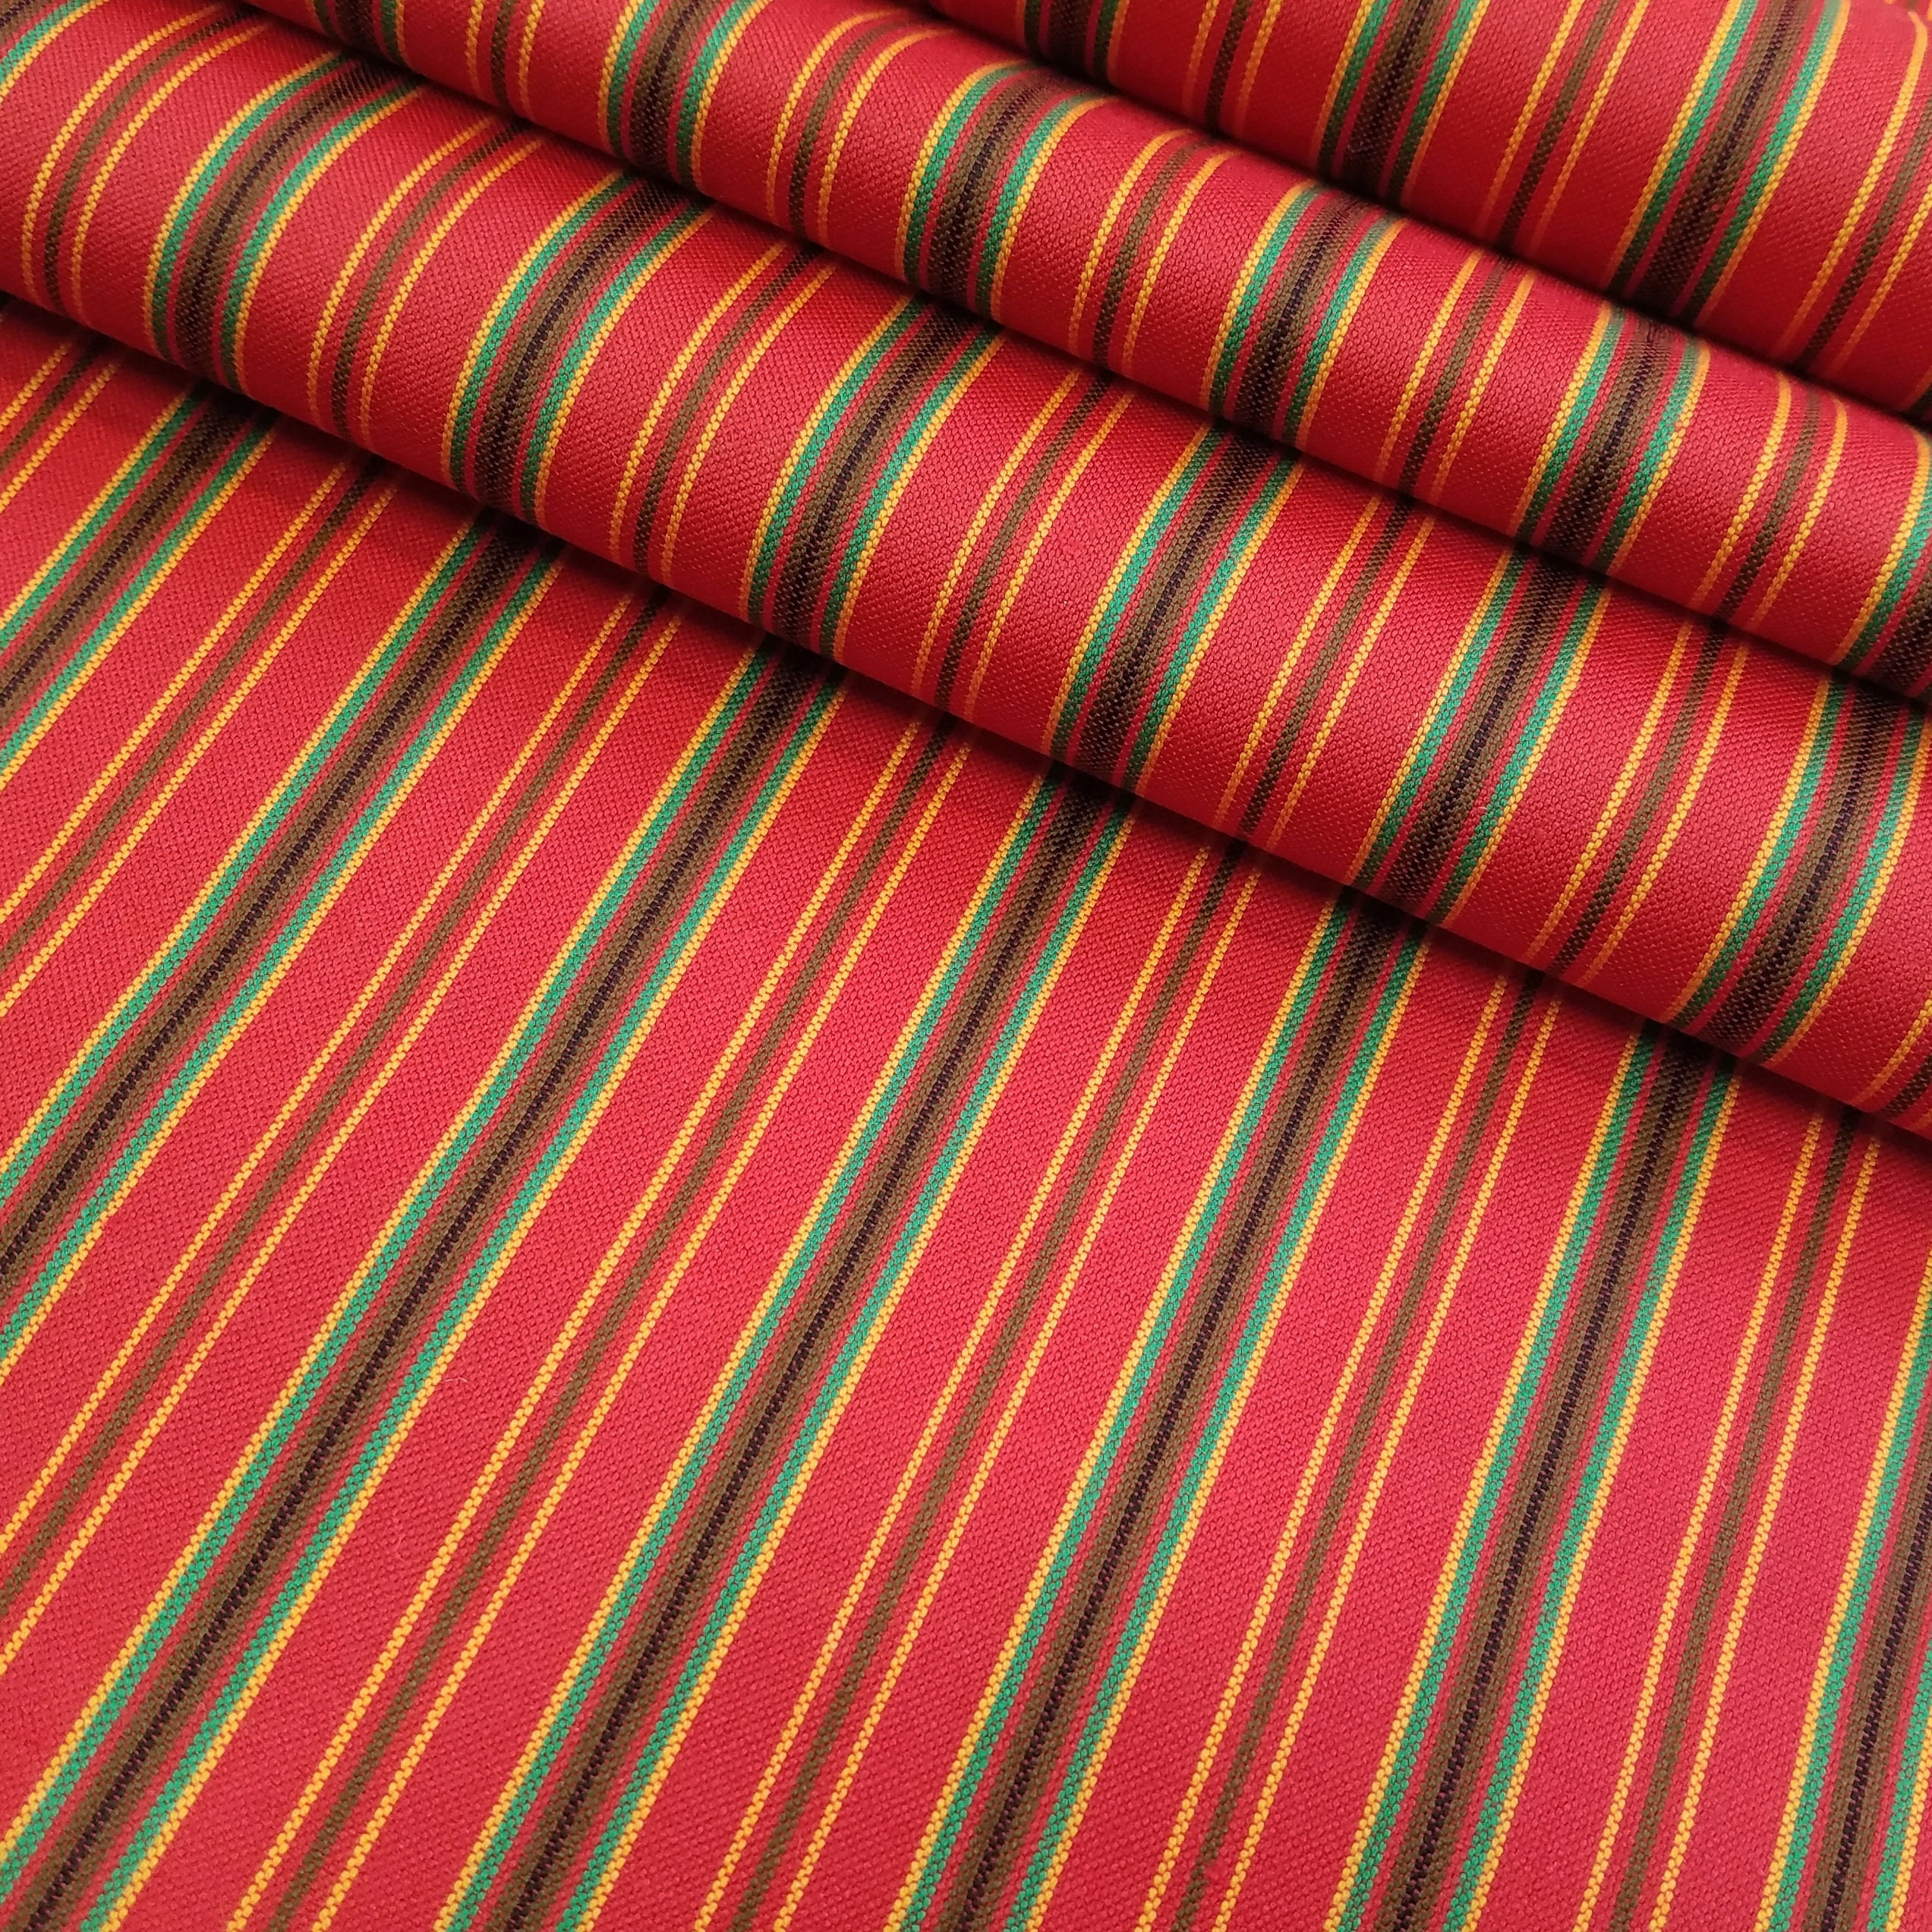 Vintage Red Striped Wool Kimono Fabric By The Yard